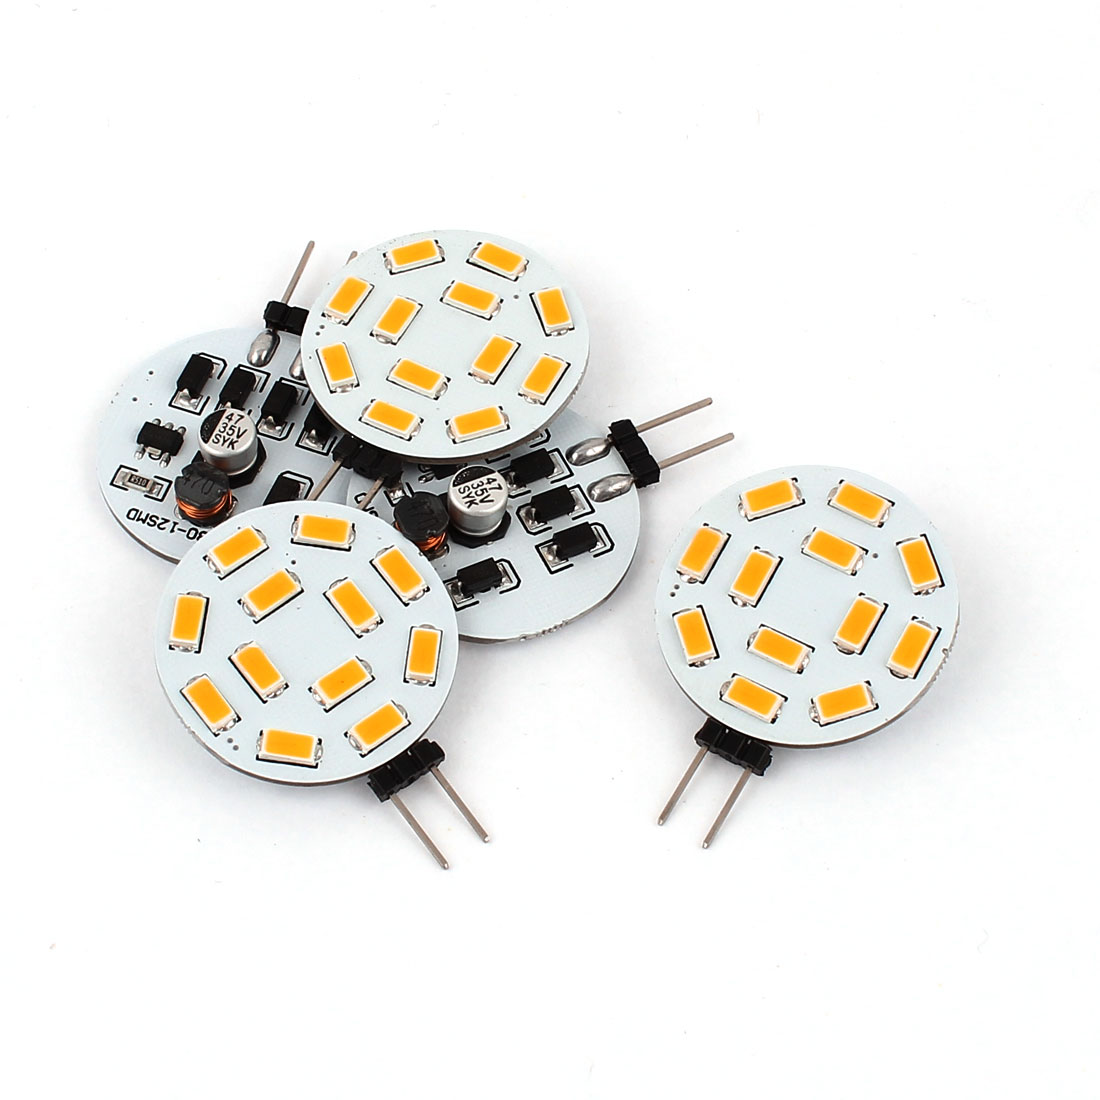 5pcs 460LM G4 5730 SMD 12 LED Cabinet Marine Boat Light Bulb Lamp Warm White